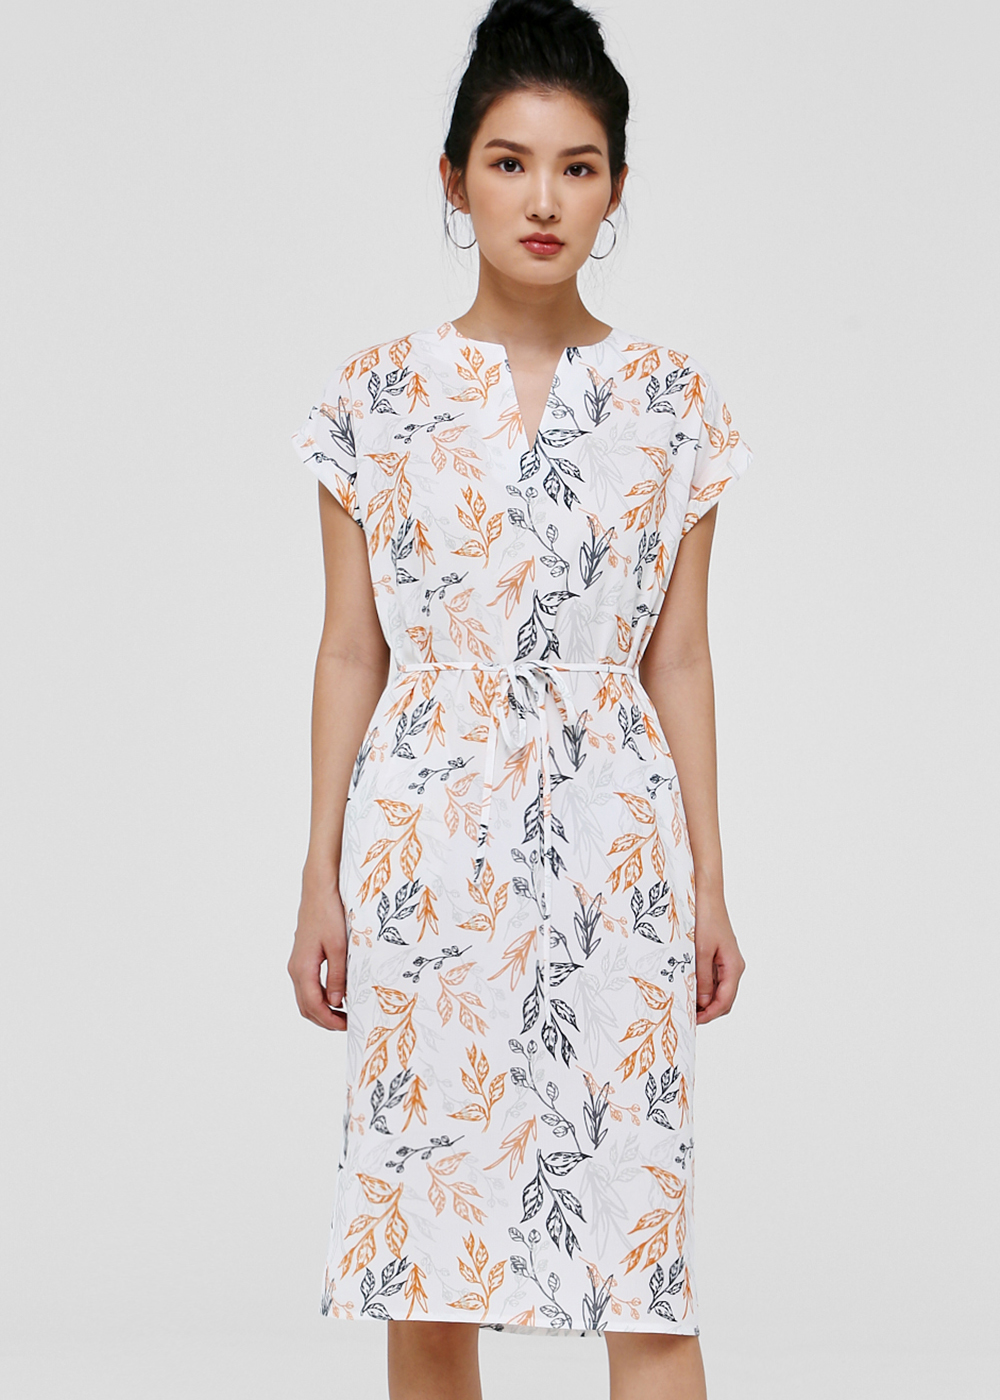 Elora Notch Neck Dress